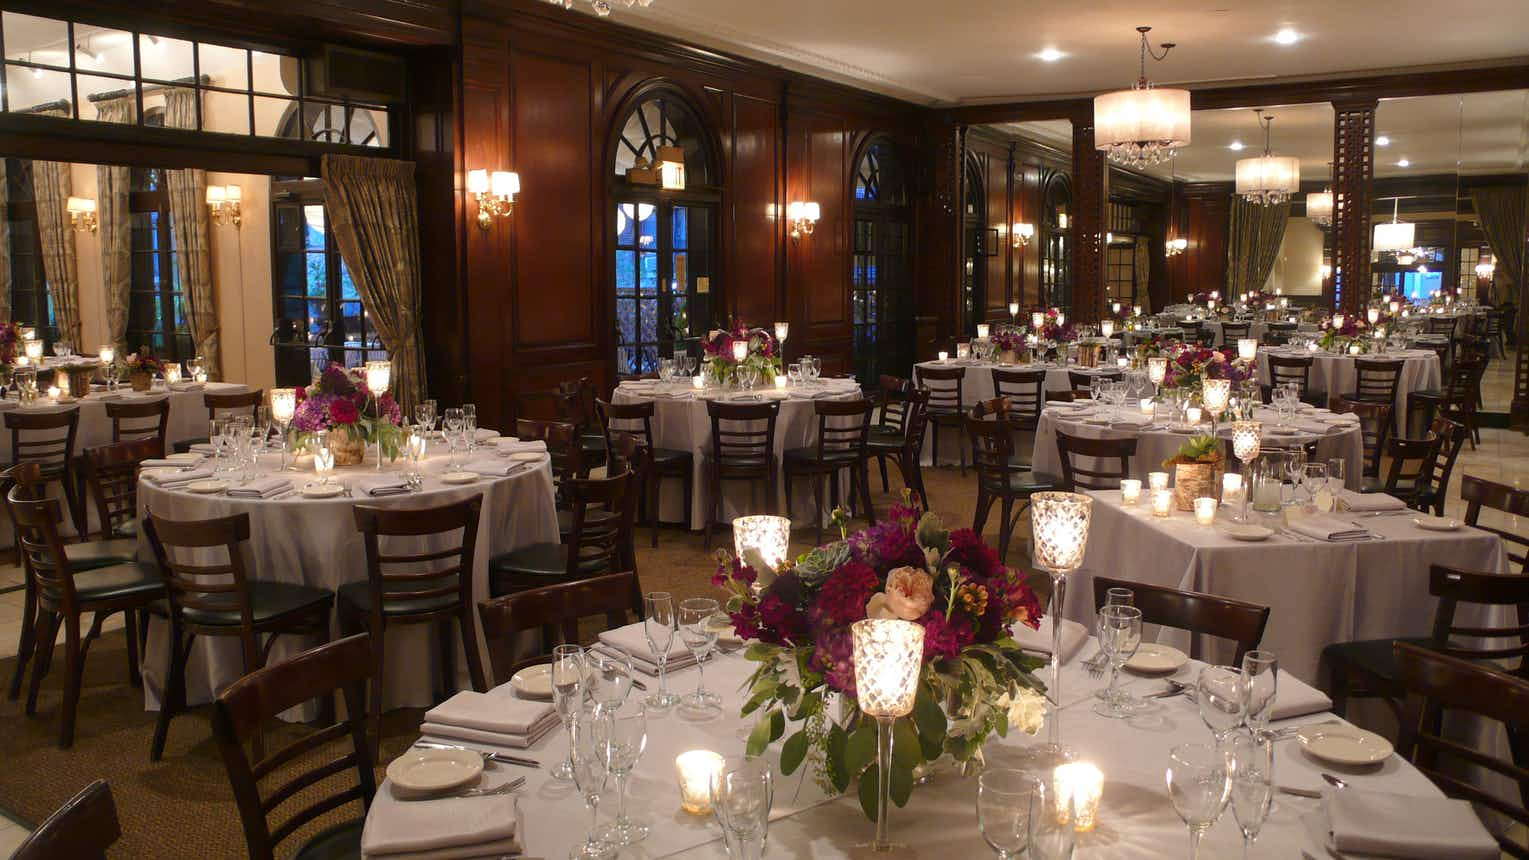 10-of-Our-Favorite-Luxury-Wedding-Venue-in-the-U.S.-00008.jpg